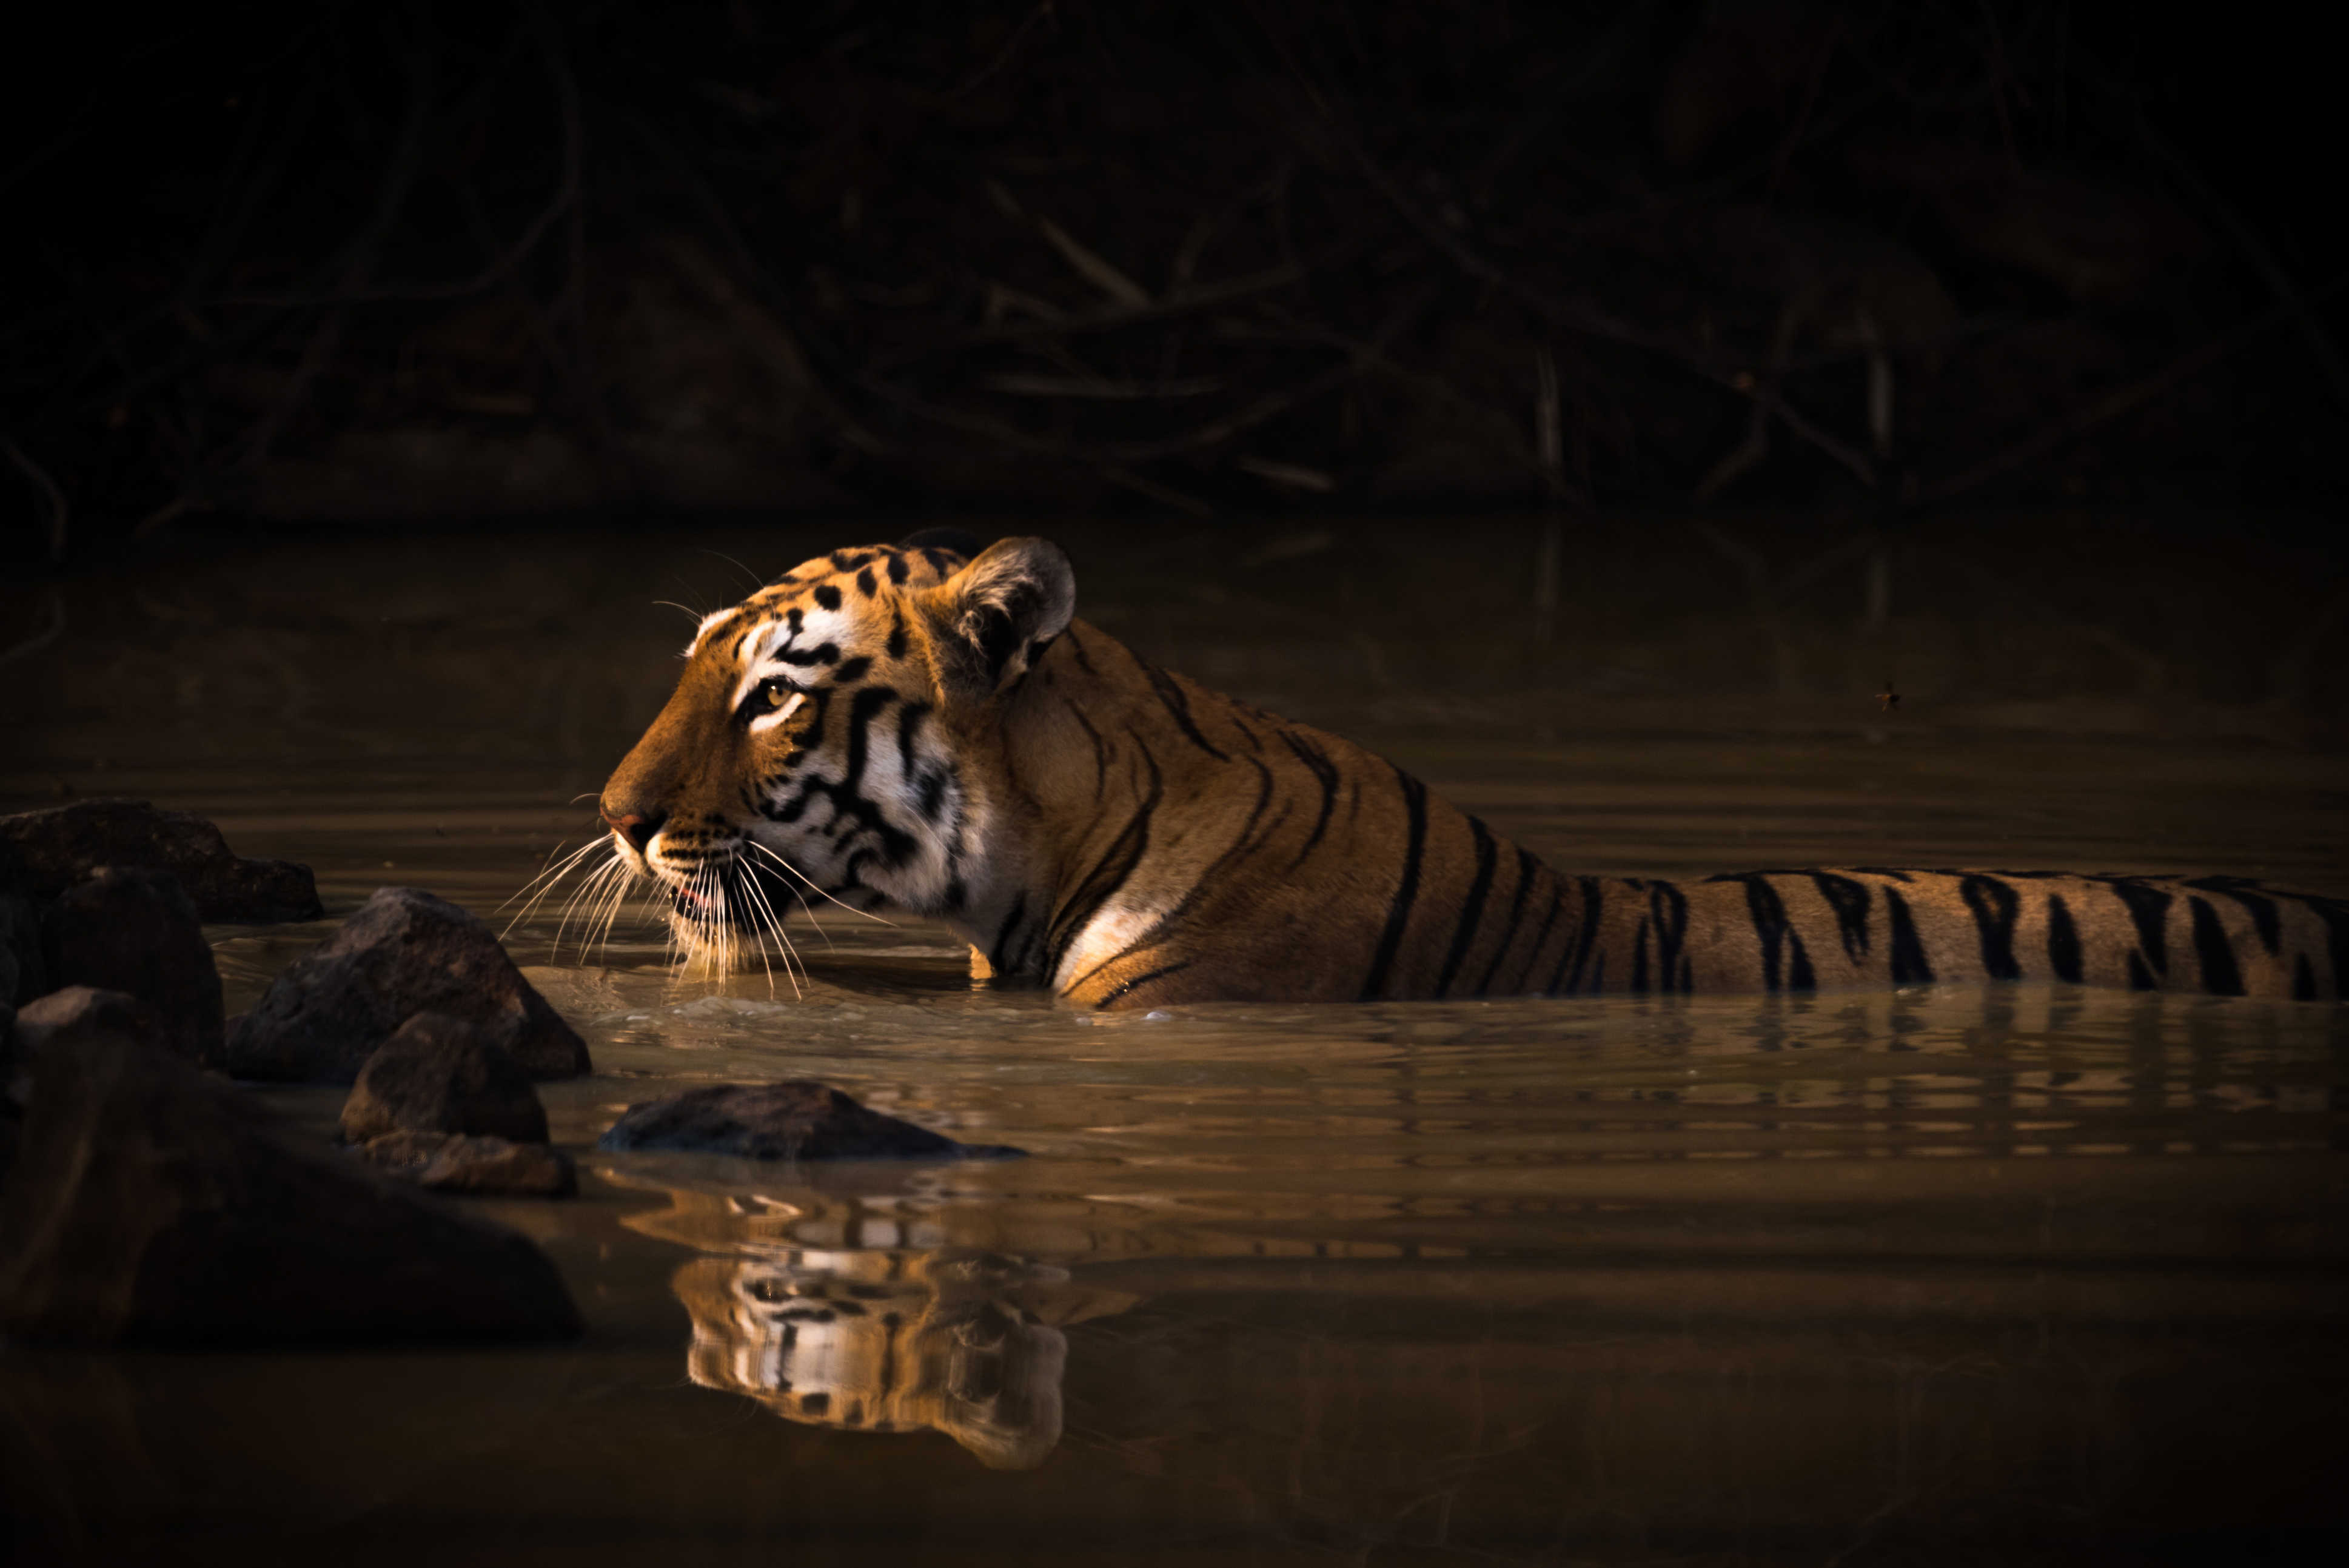 Nick Dale's winning image, taken in India